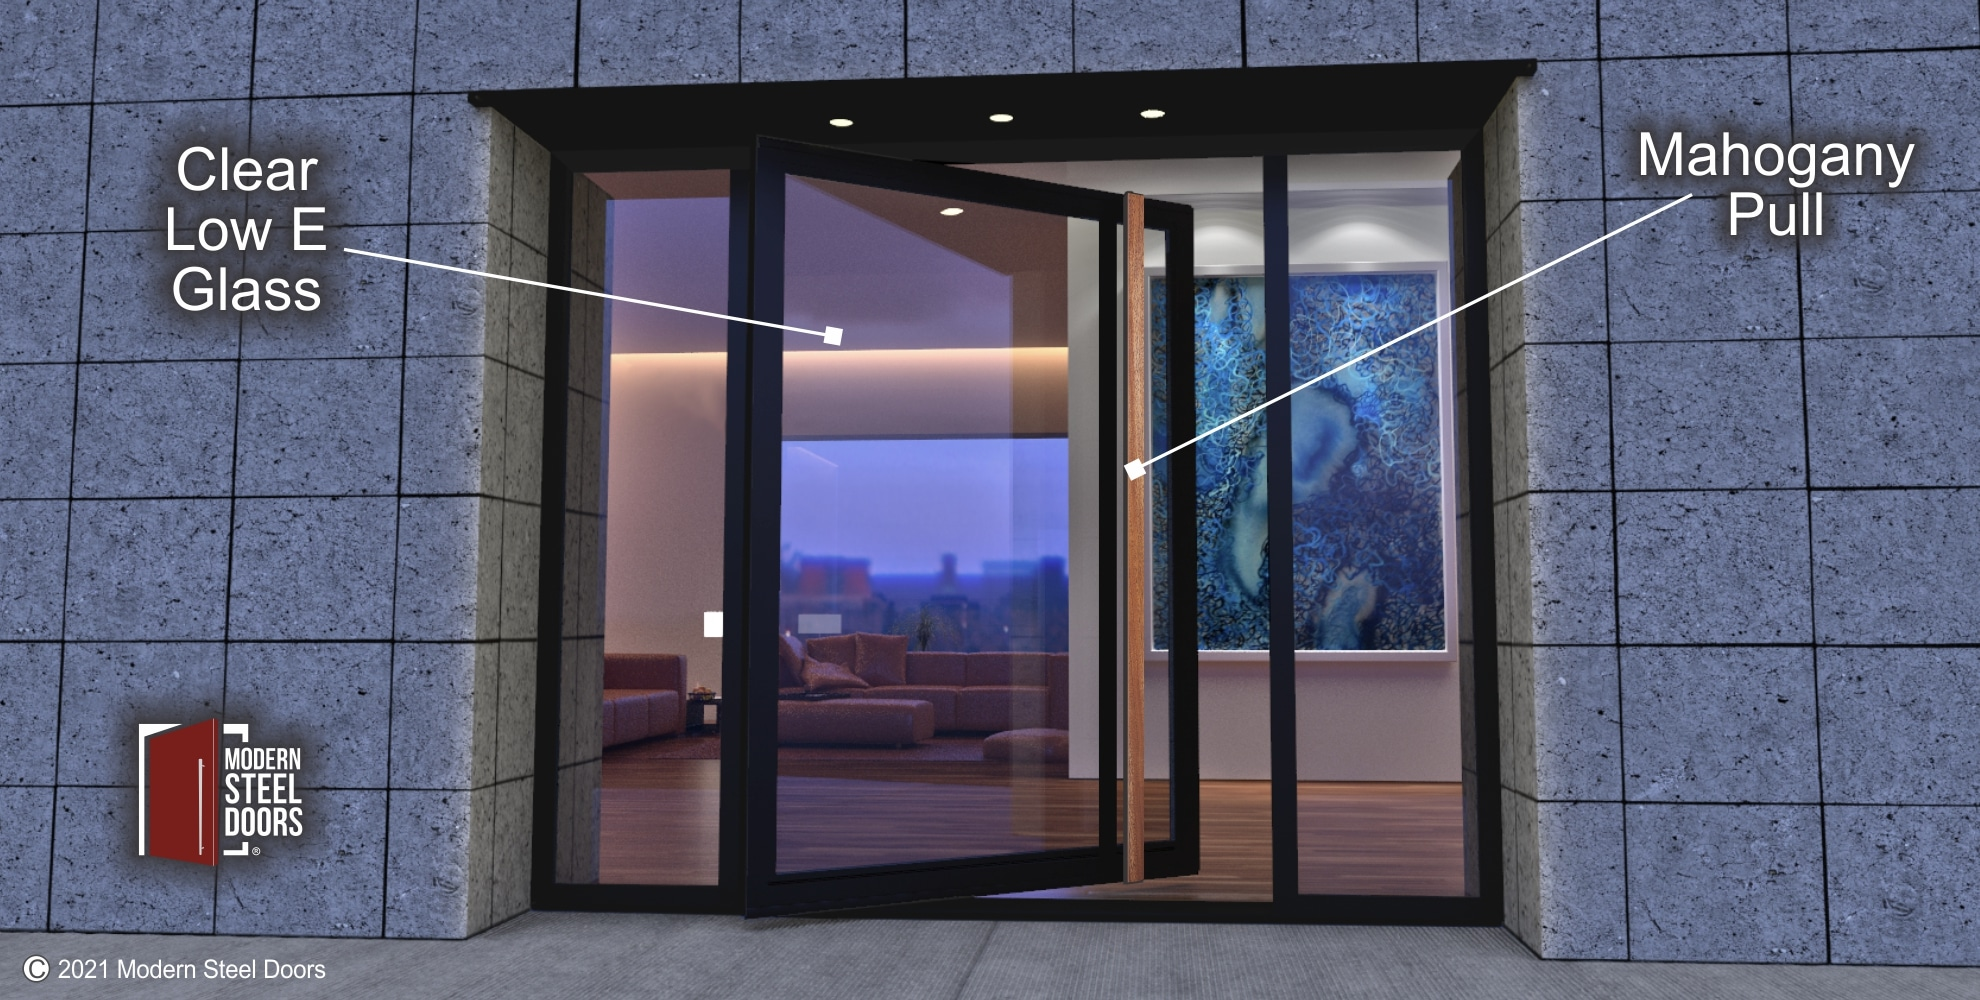 GLASS PIVOT DOOR WITH MAHOGANY PULLS AND SIDELIGHTS